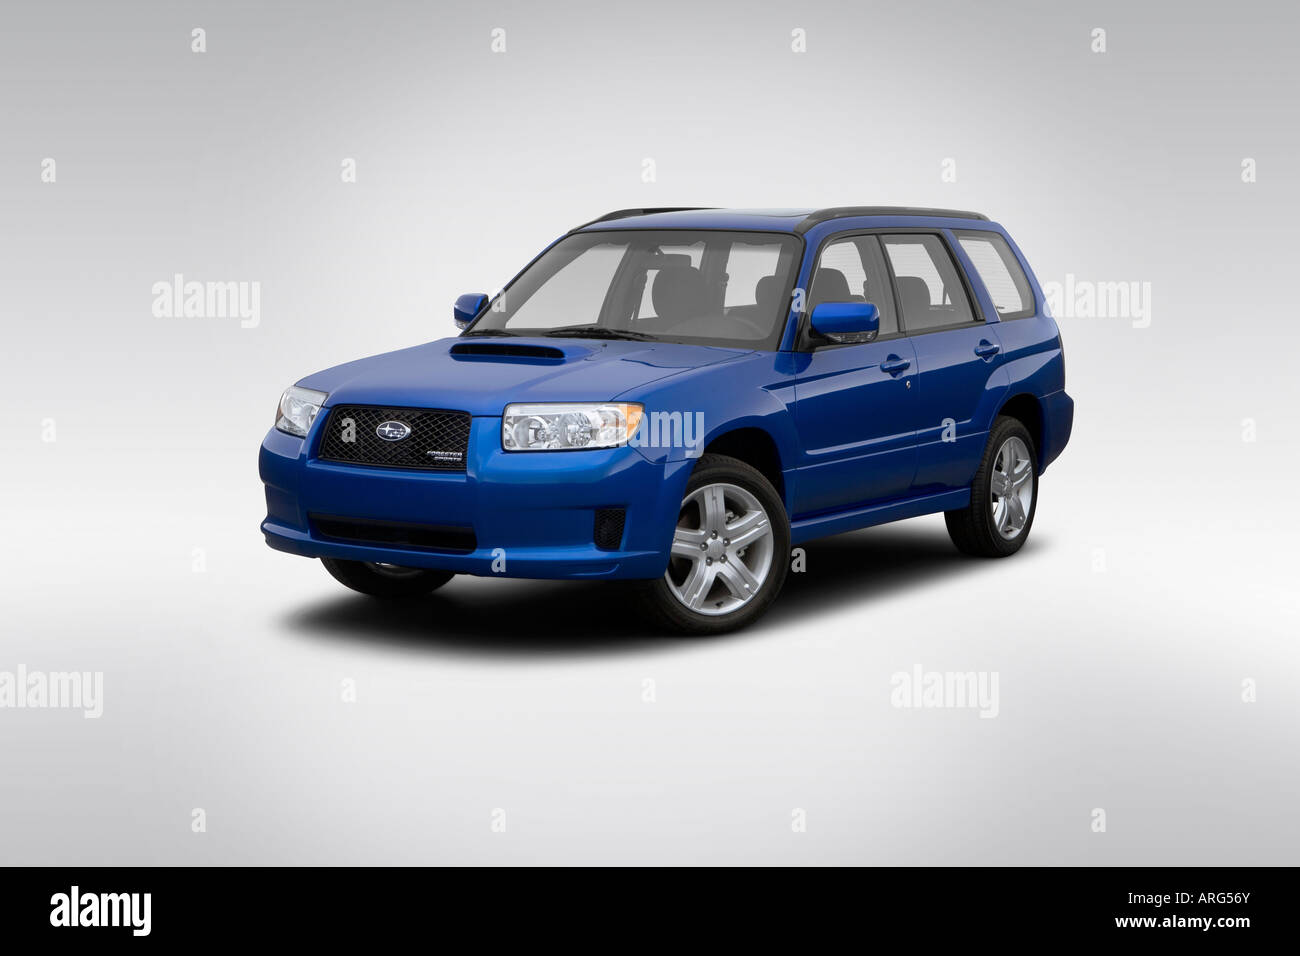 2007 subaru forester sports 25 xt in blue front angle view 2007 subaru forester sports 25 xt in blue front angle view vanachro Choice Image